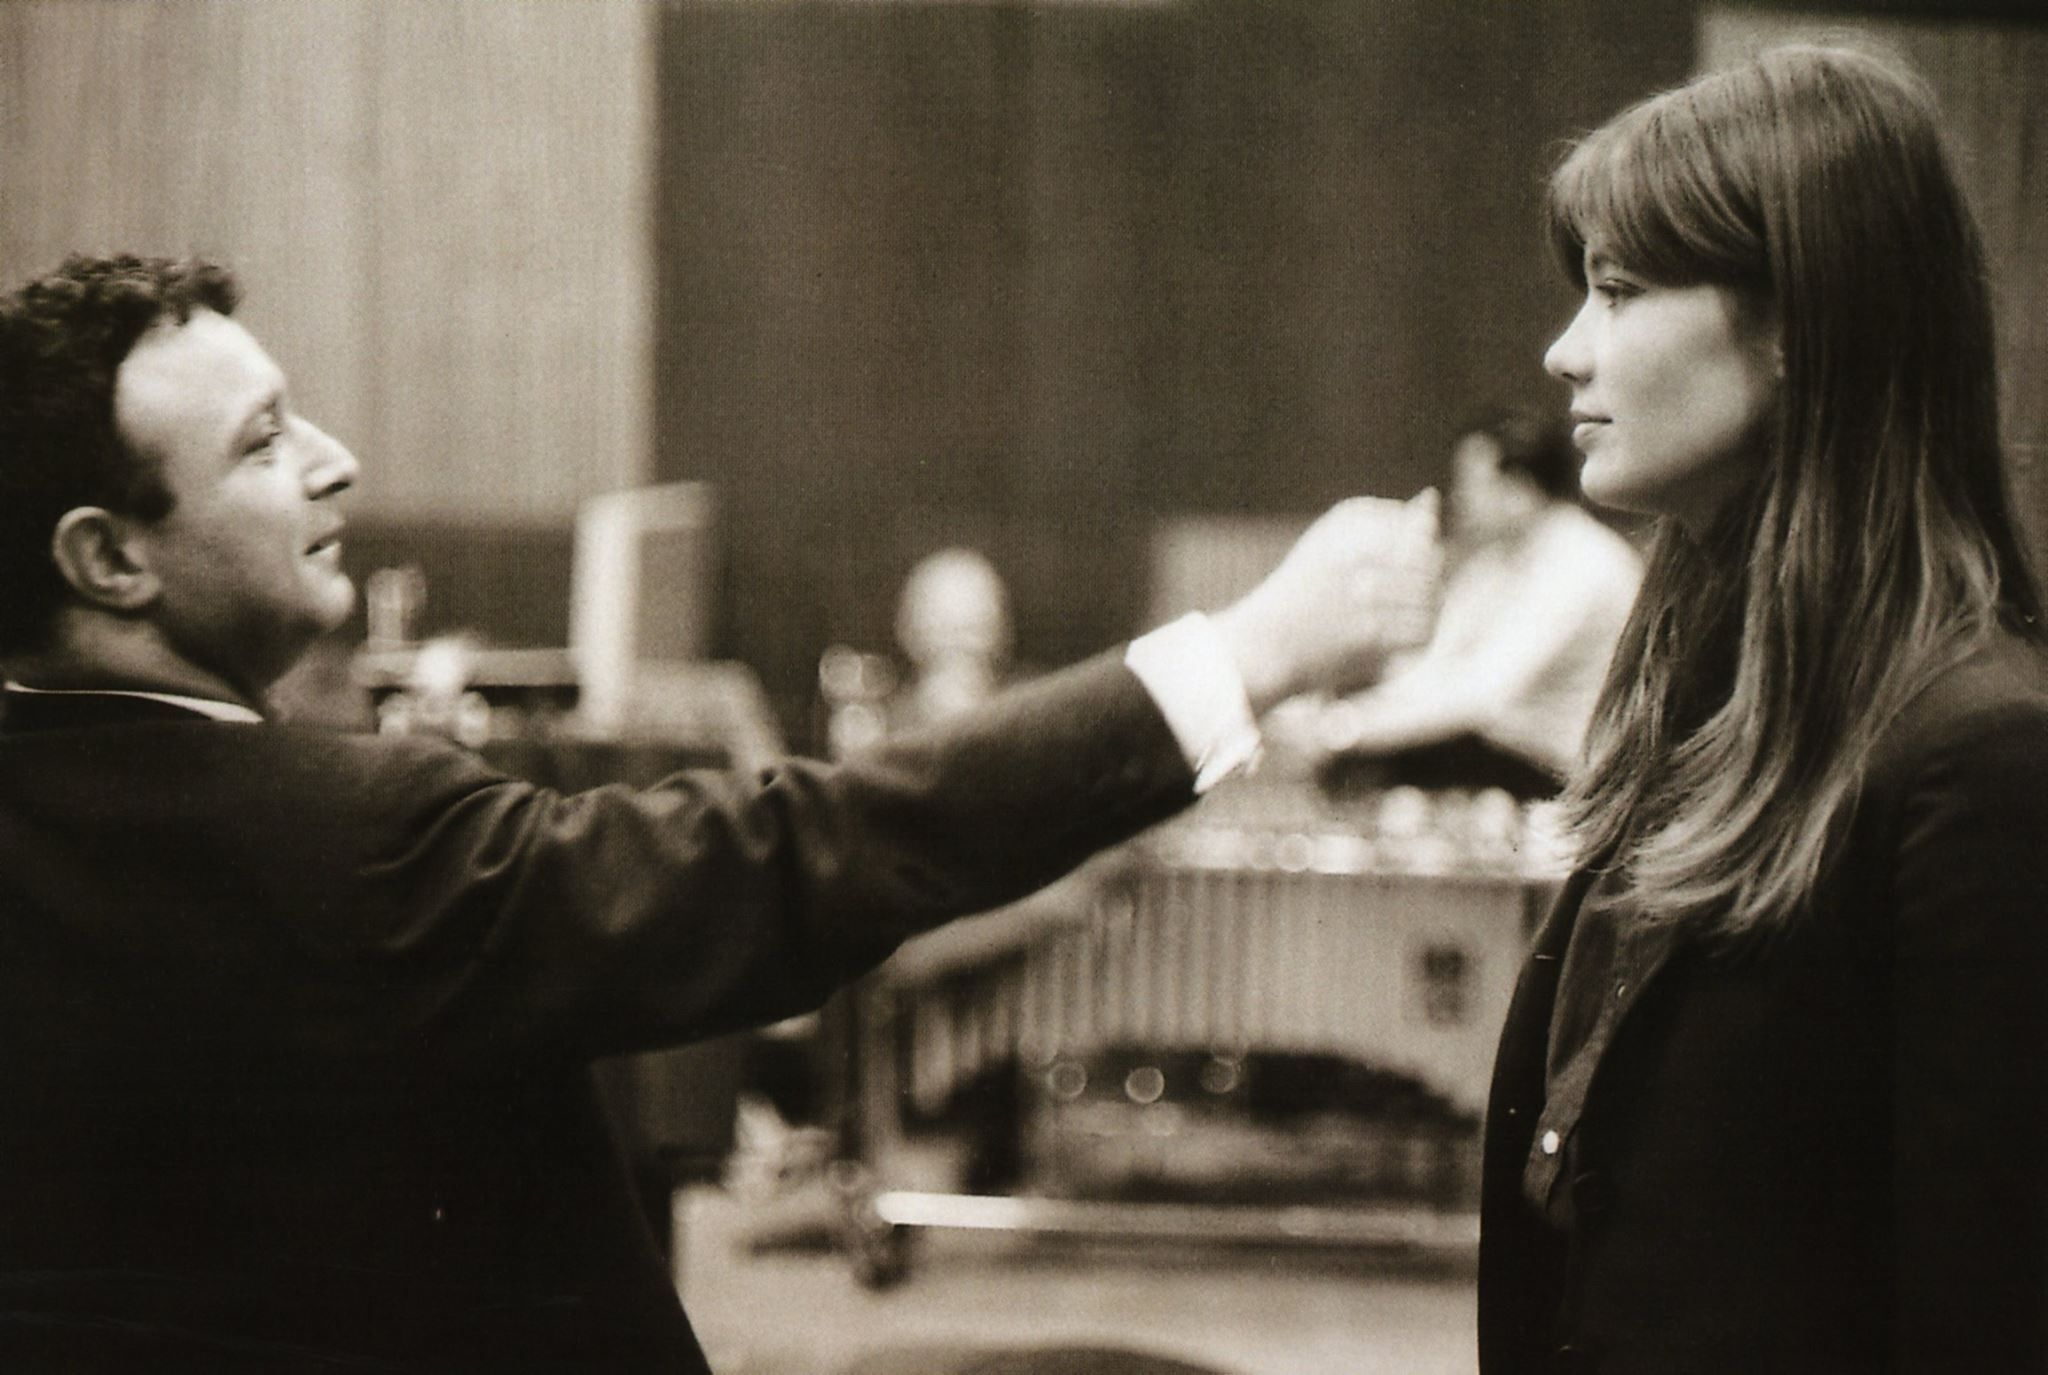 Françoise Hardy and Jacques Wolfson (Vogue Records). Photo by Jean-Marie Perier, March 1964